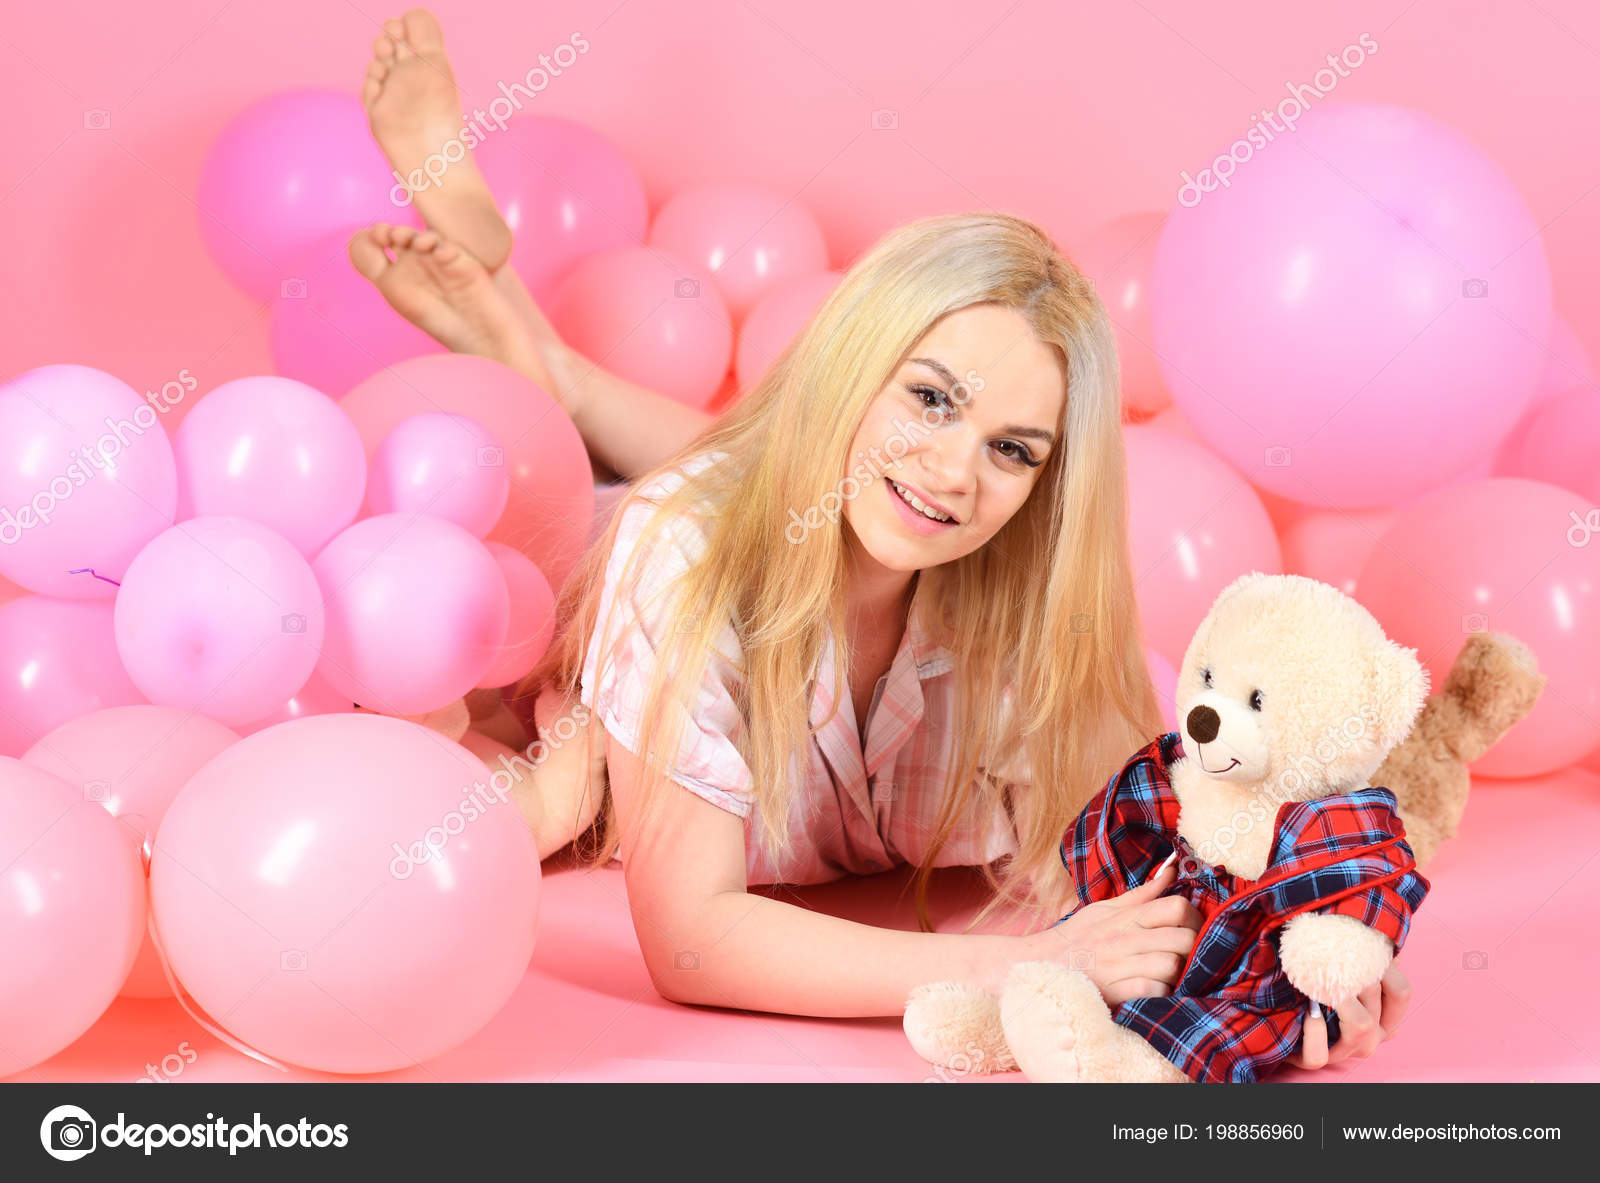 Think, blonde girl and toy